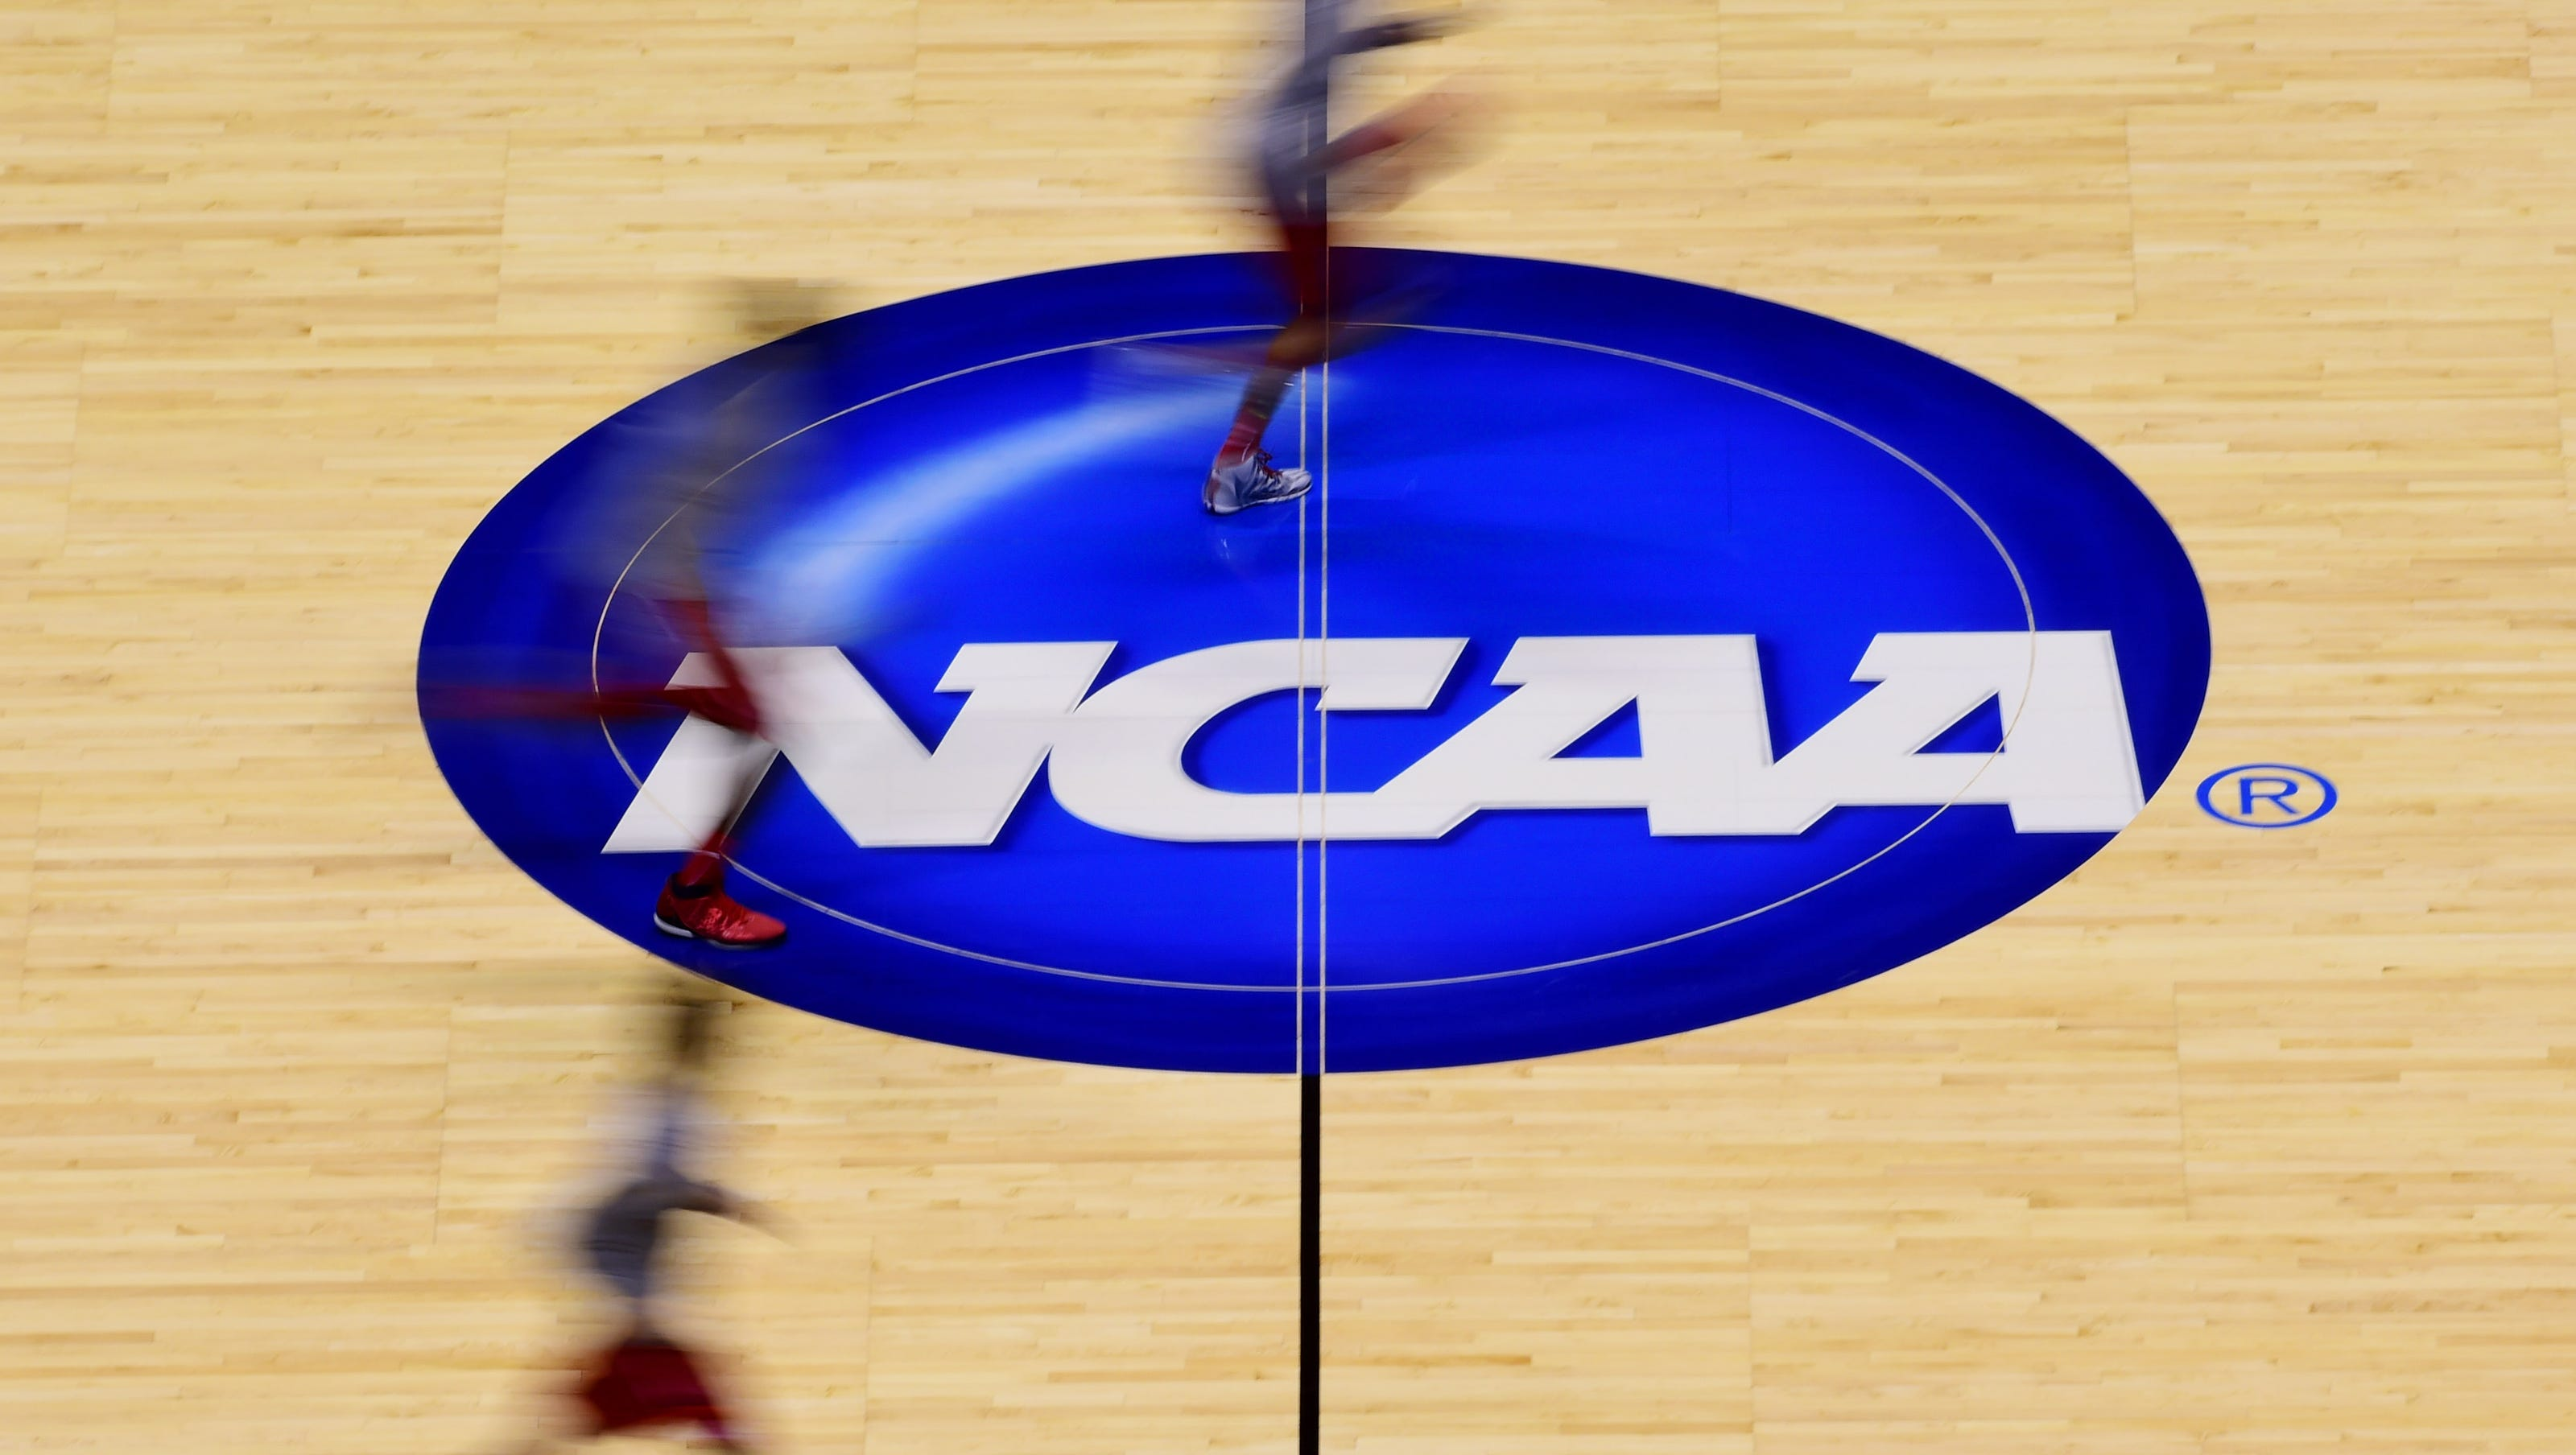 Costs high for Louisville in NCAA, FBI investigation cleanup